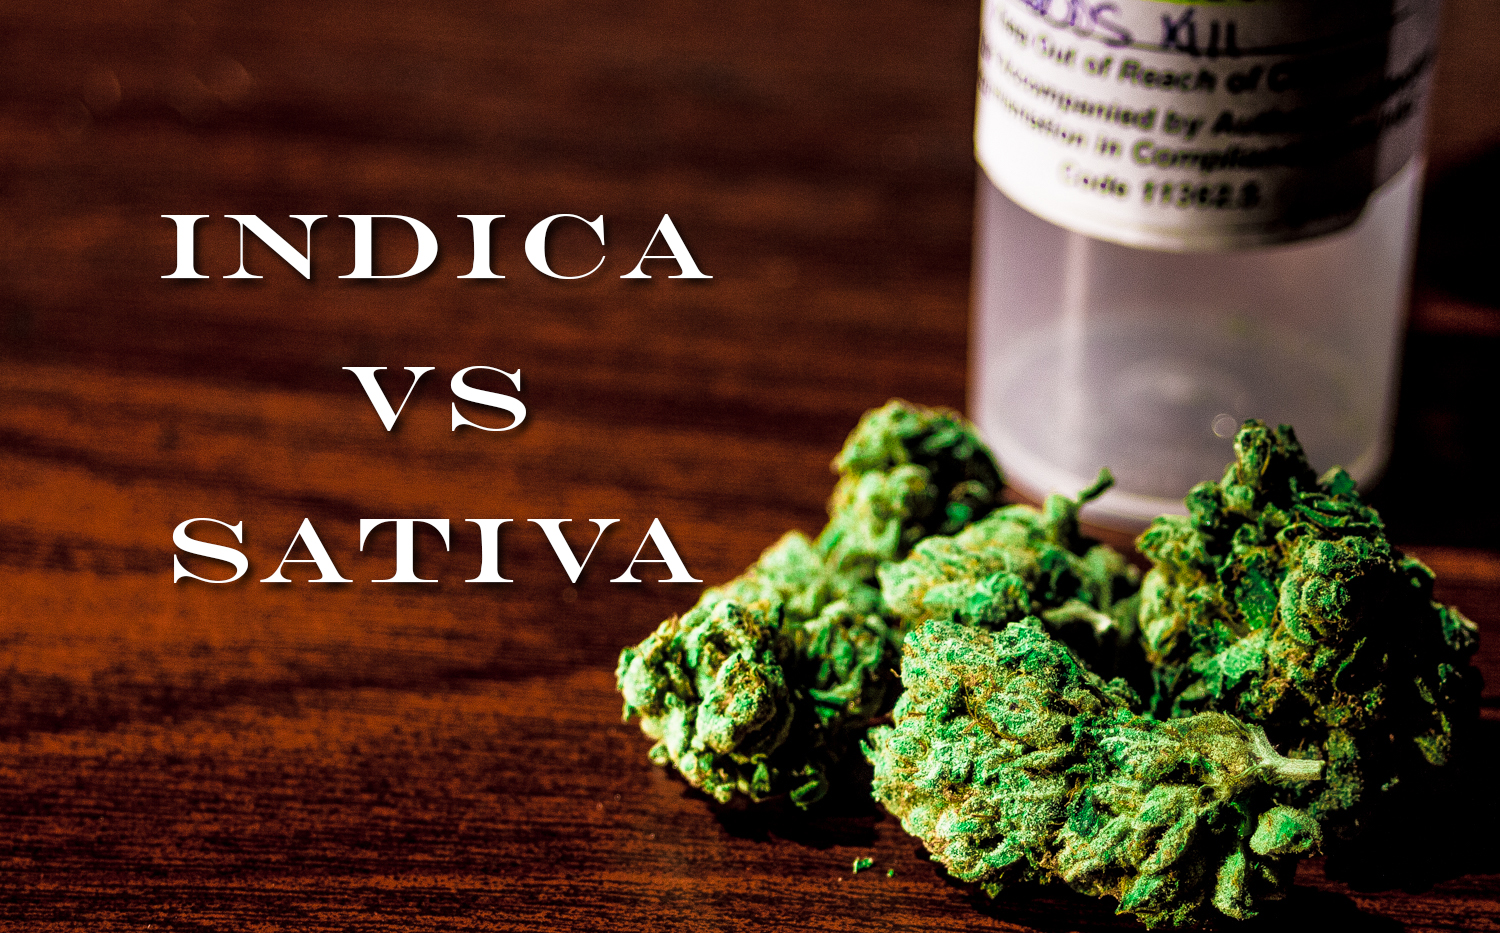 Sativa Vs Indica – What's the Best Marijuana For Me?